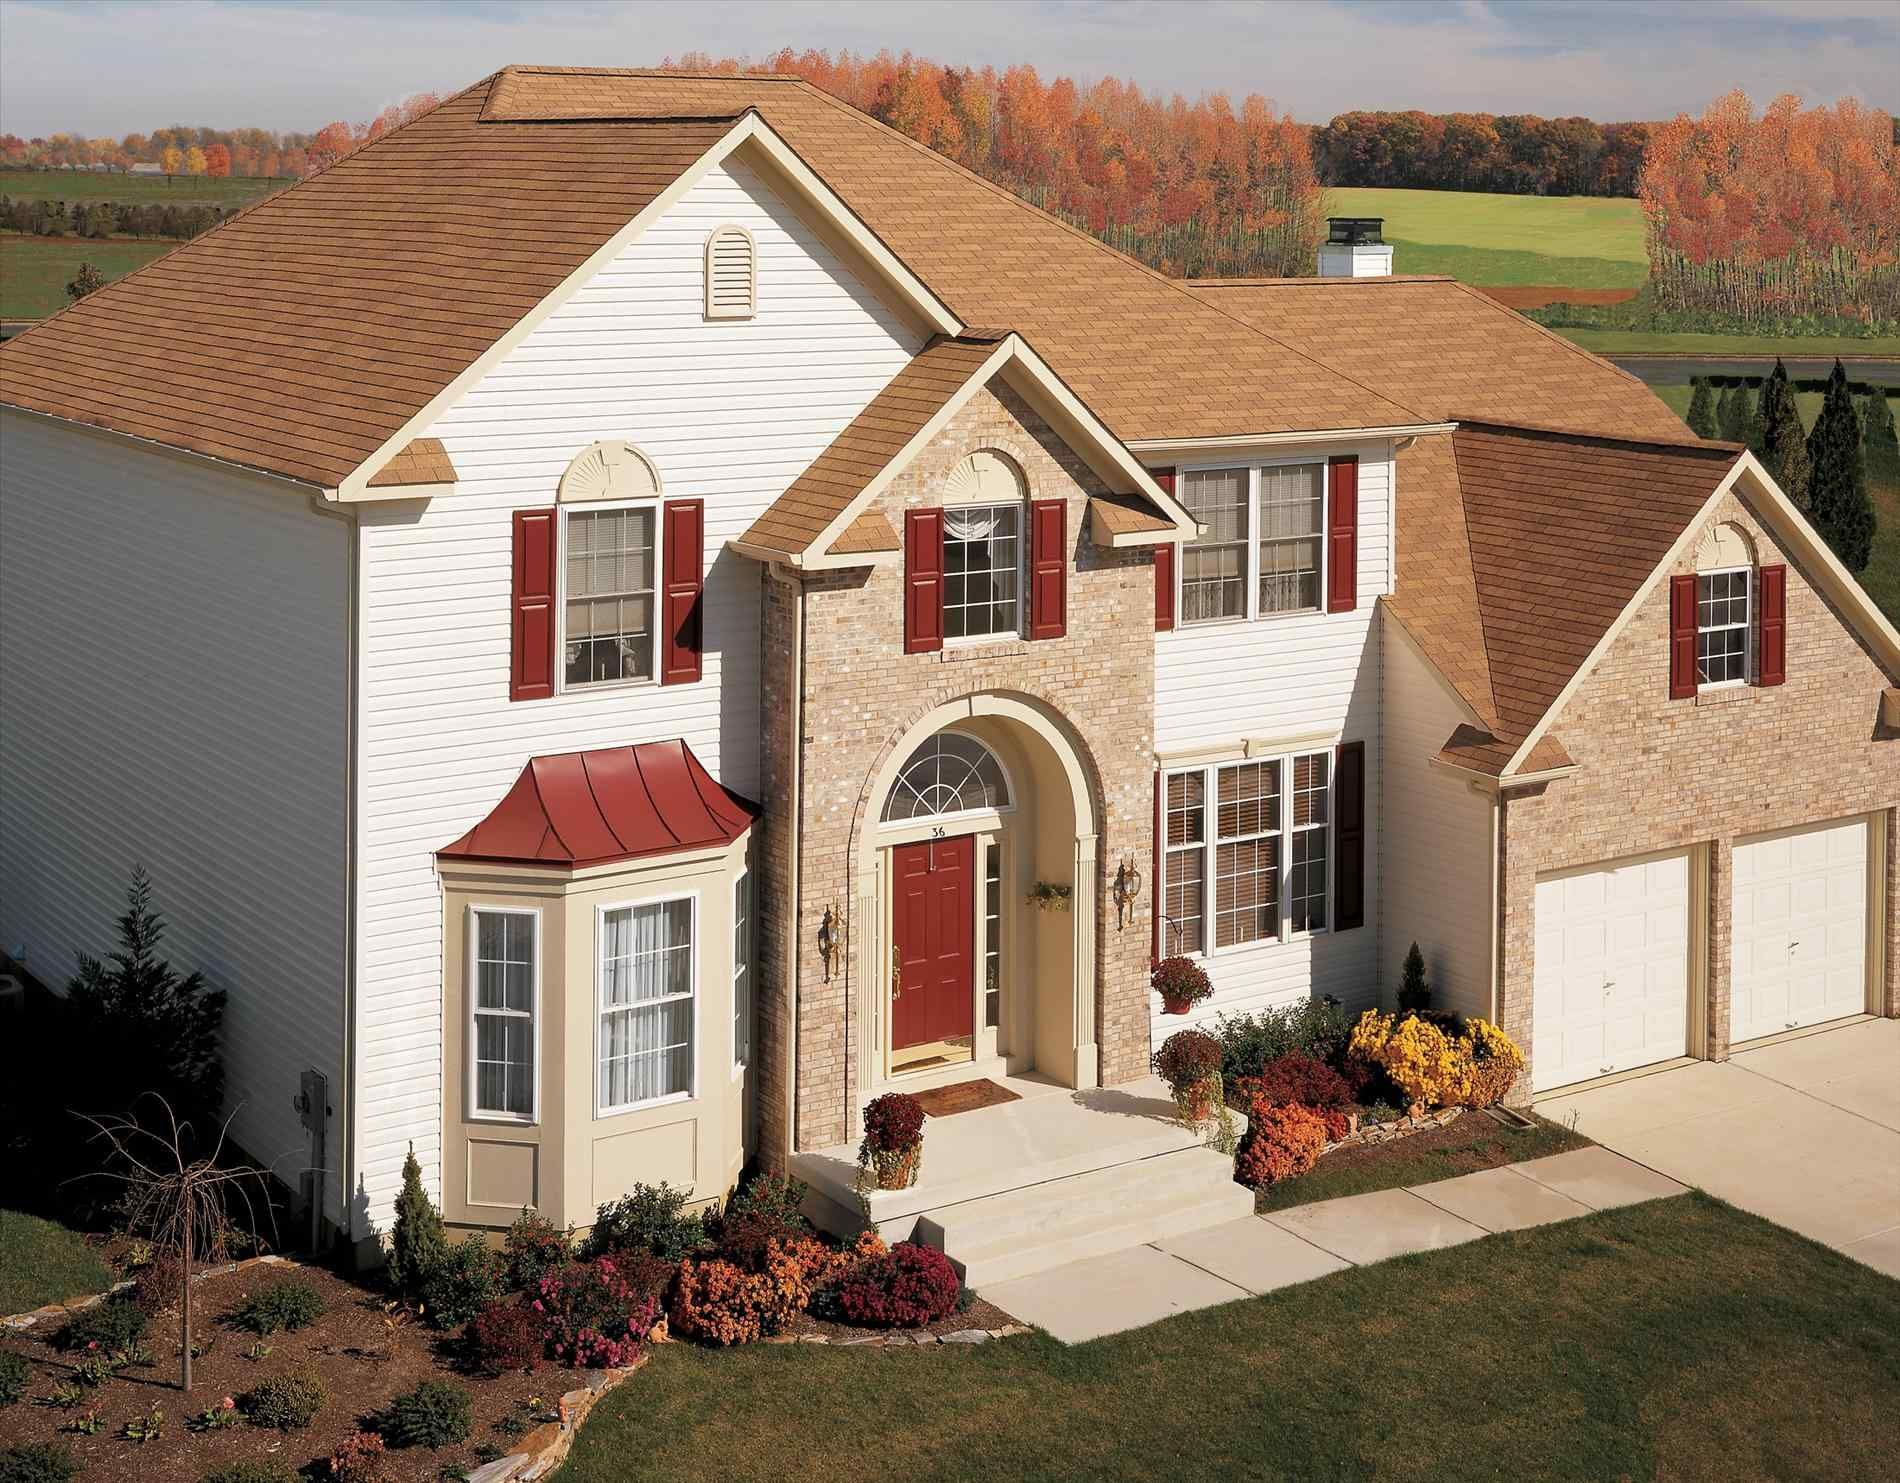 Best Color For Roof Shingles Roofing Options Exterior 400 x 300